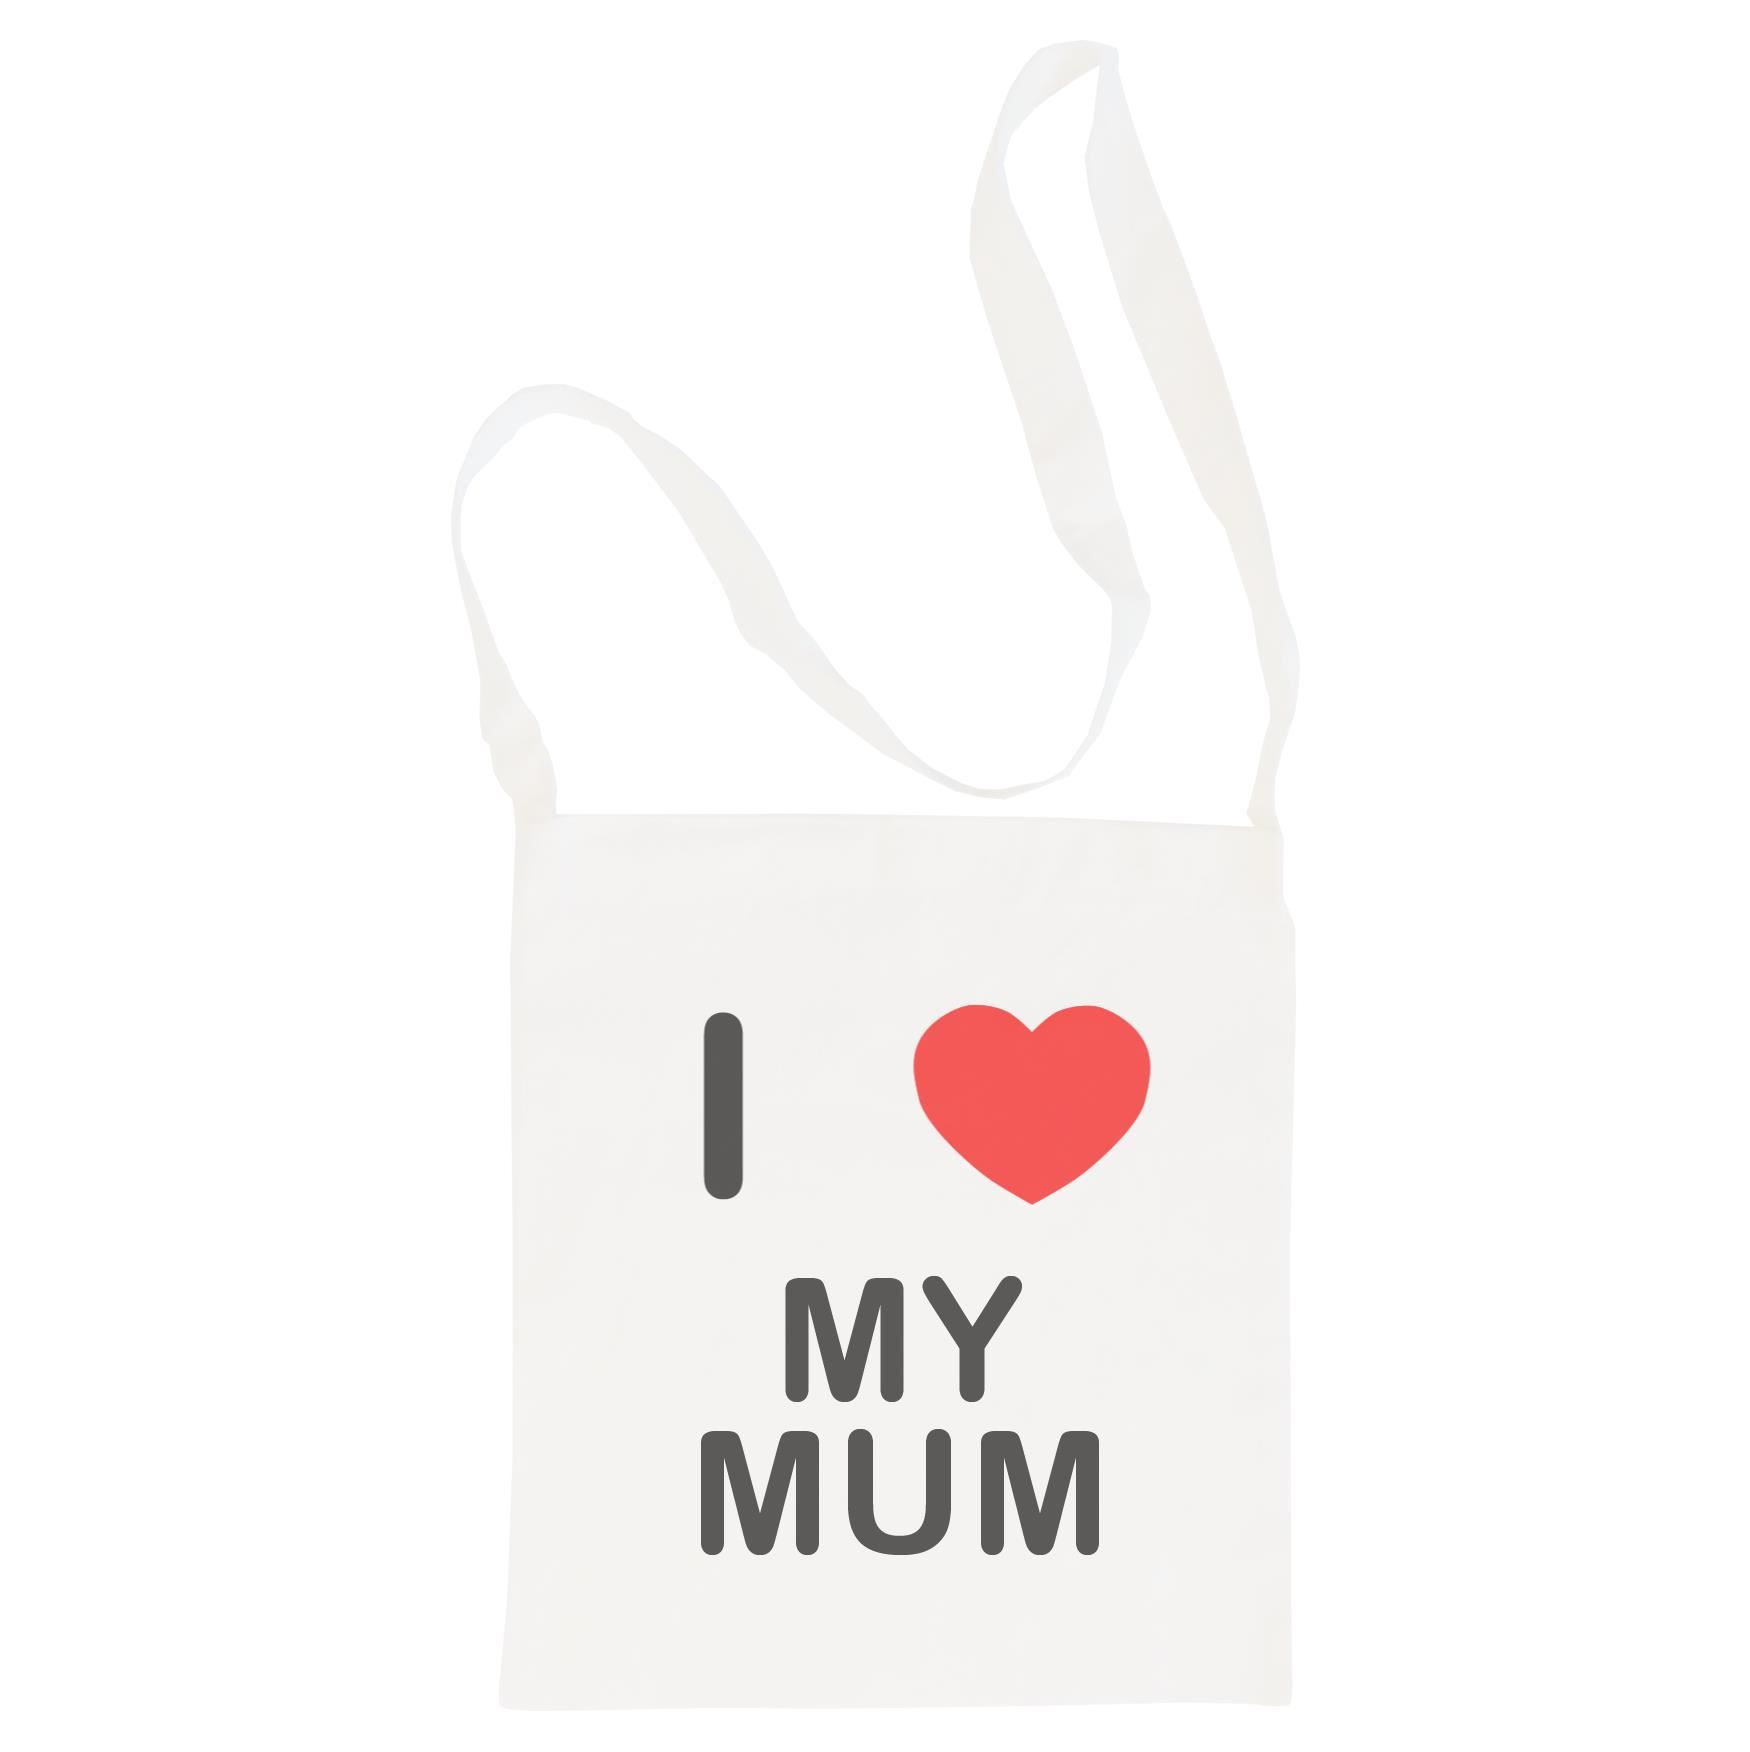 I Love My Mum - Cotton Bag | Size choice Tote, Shopper or Sling